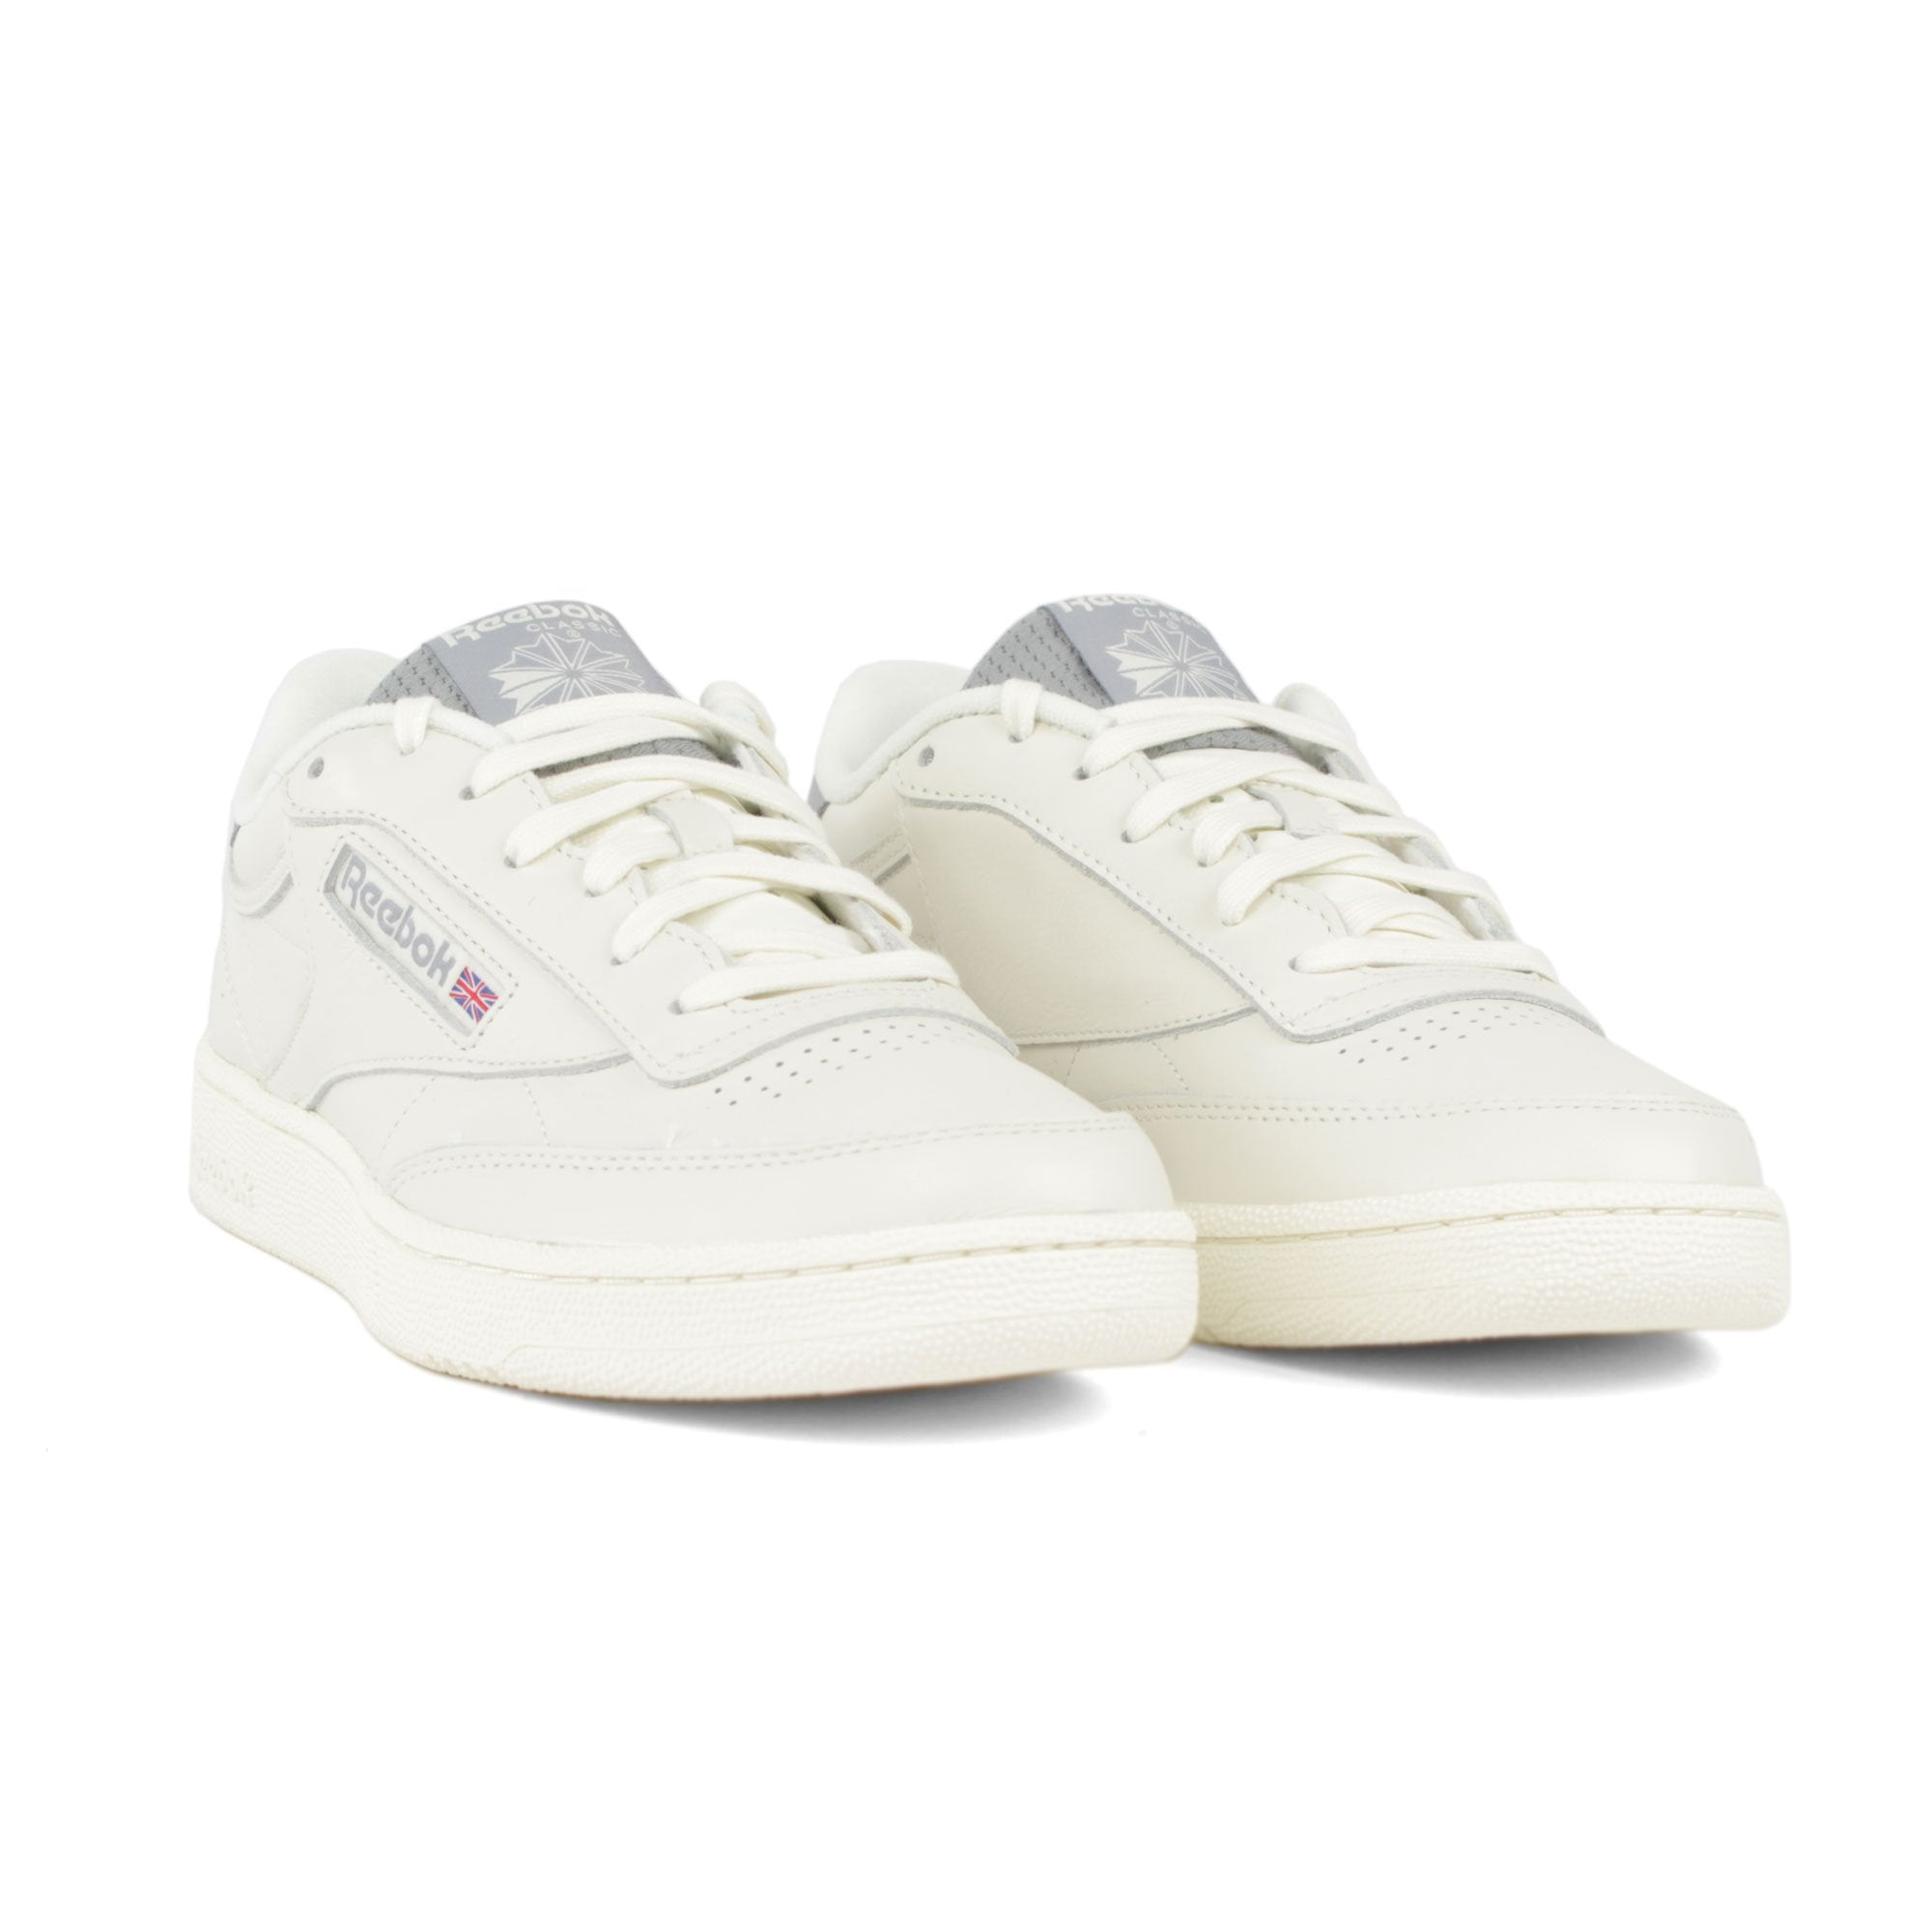 Reebok Club C 85 MU Product Photo #2